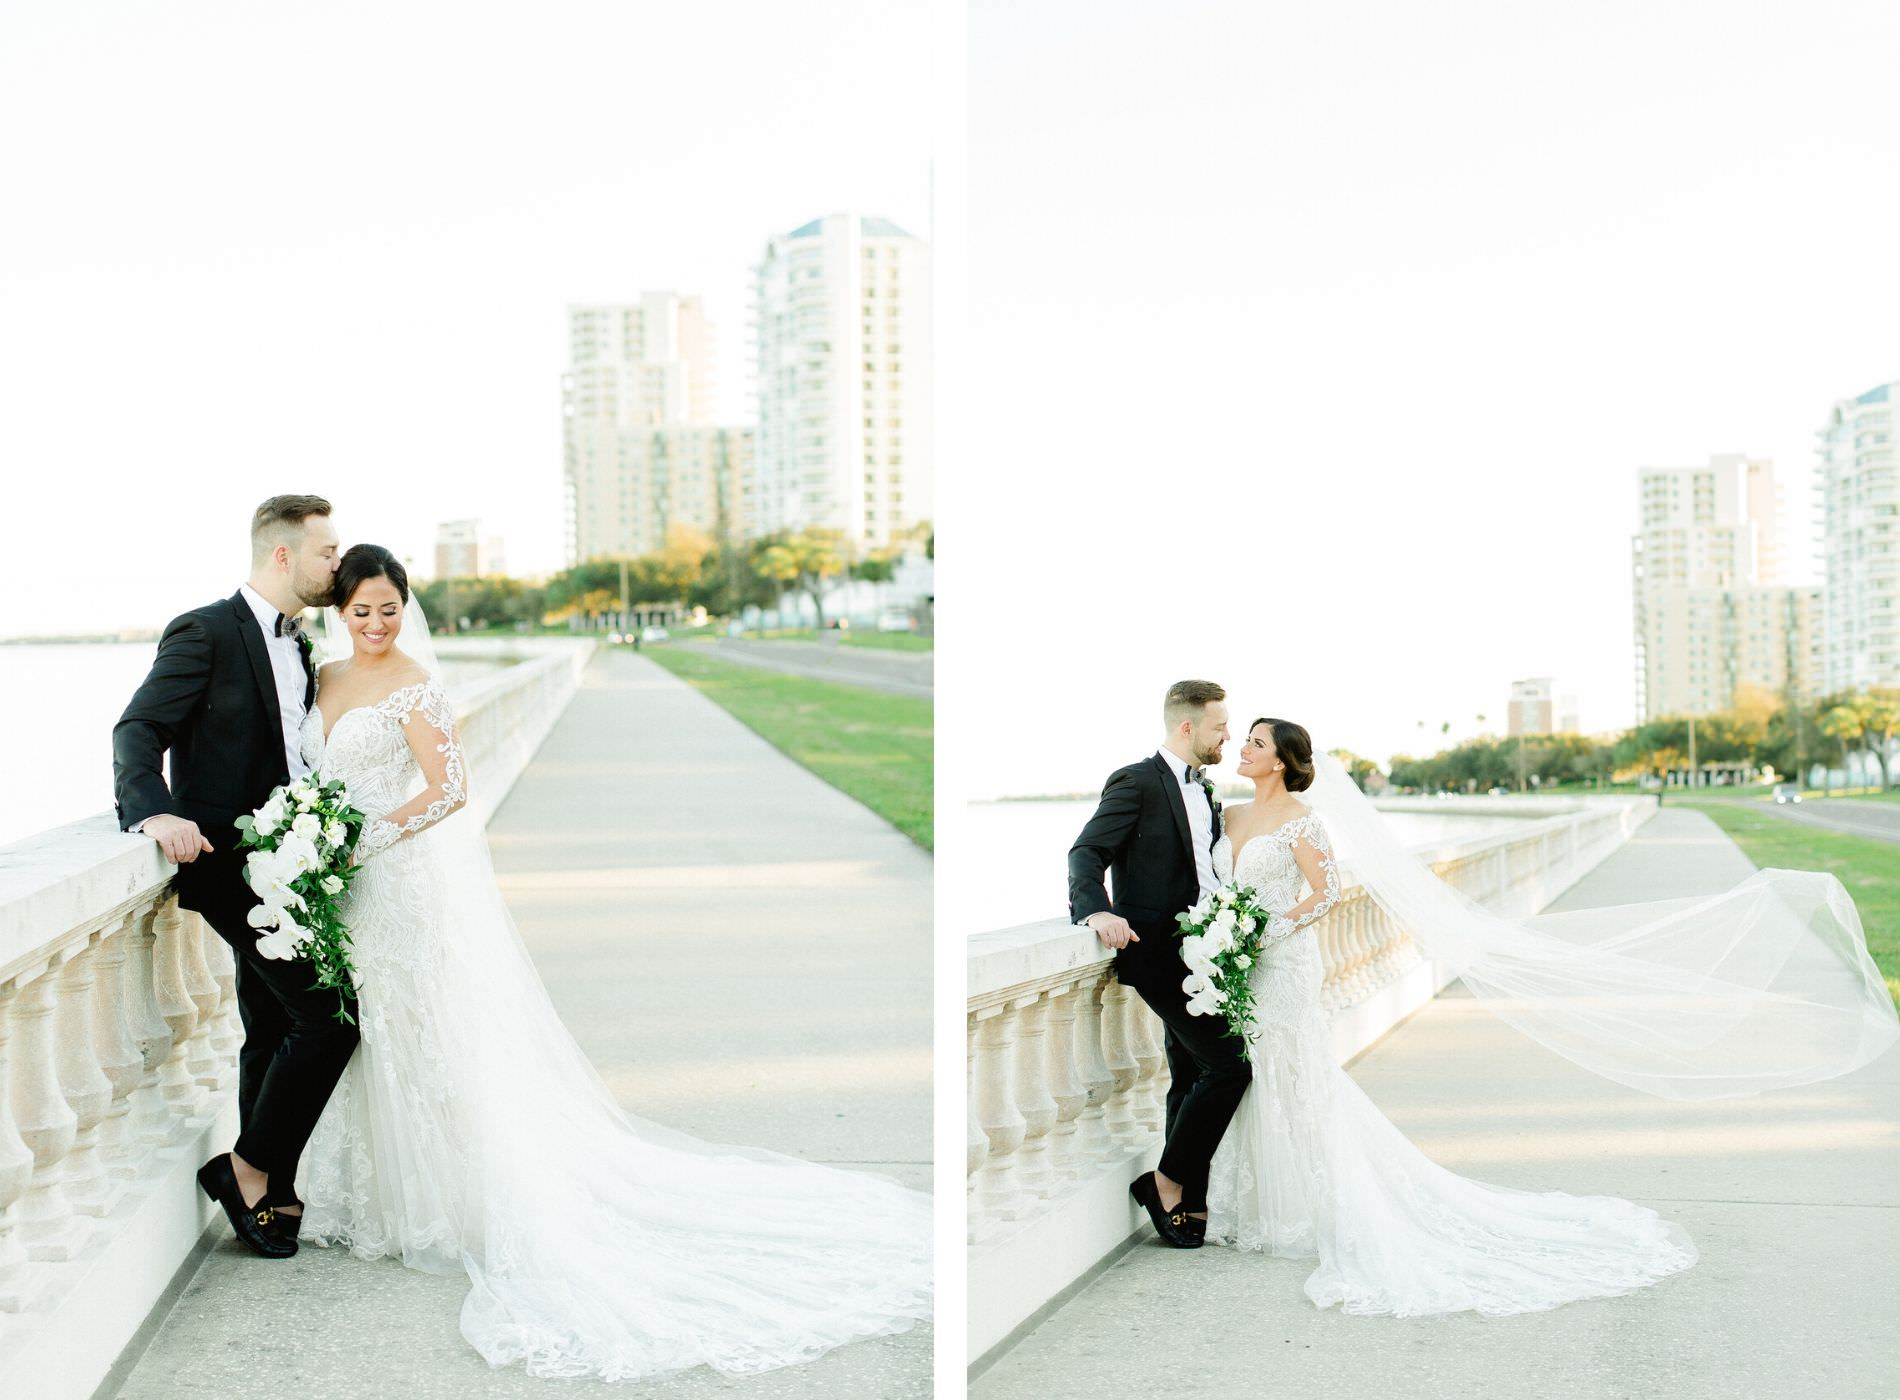 Classic Tampa Bay Bride and Groom Wedding Portrait on Bayshore Boulevard, Bride in Illusion Lace Sleeve Fit and Flare Wedding Dress, Holding Wedding Floral Bouquet with White Orchid, Ivory Roses and Greenery, Veil Blowing in Wind